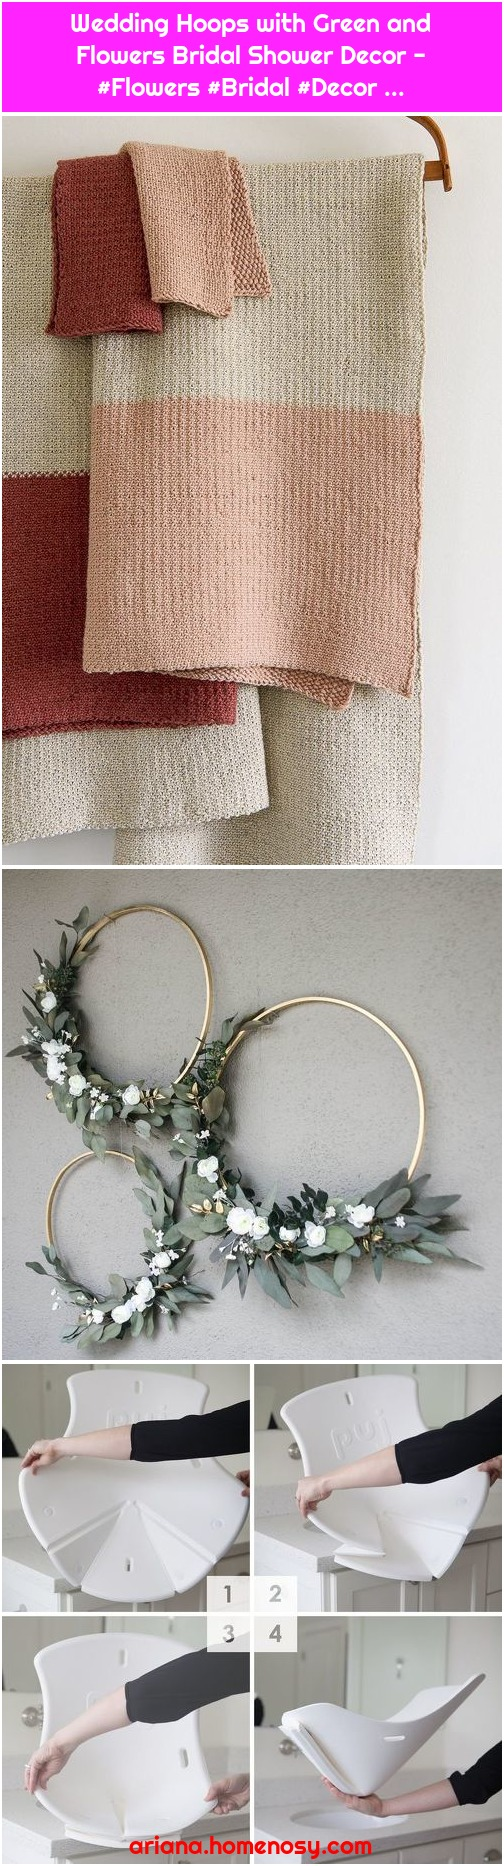 Wedding Hoops with Green and Flowers Bridal Shower Decor - #Flowers #Bridal #Decor ...